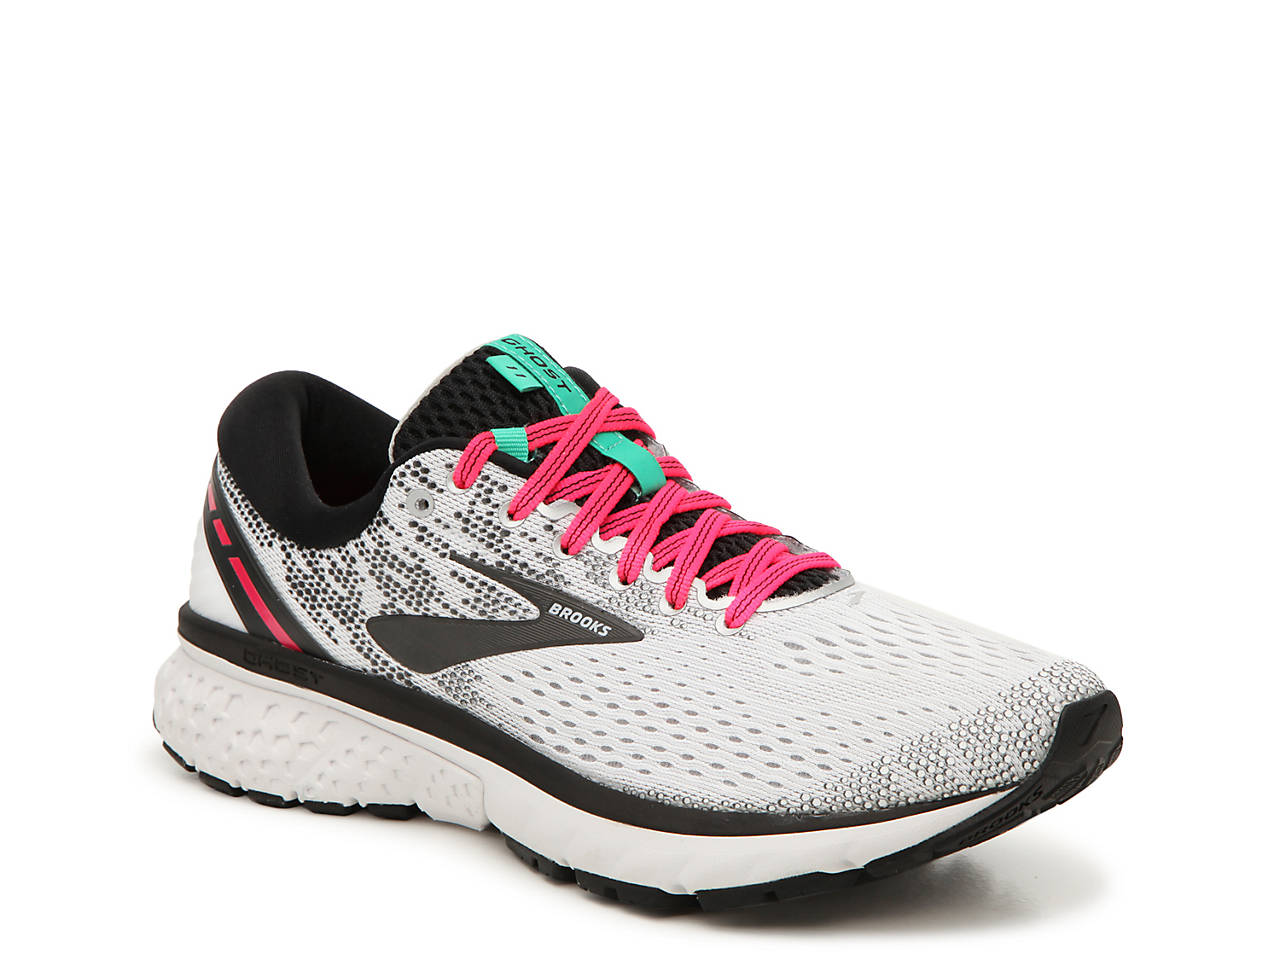 77140d737 Brooks Ghost 11 Running Shoe - Women's Women's Shoes | DSW